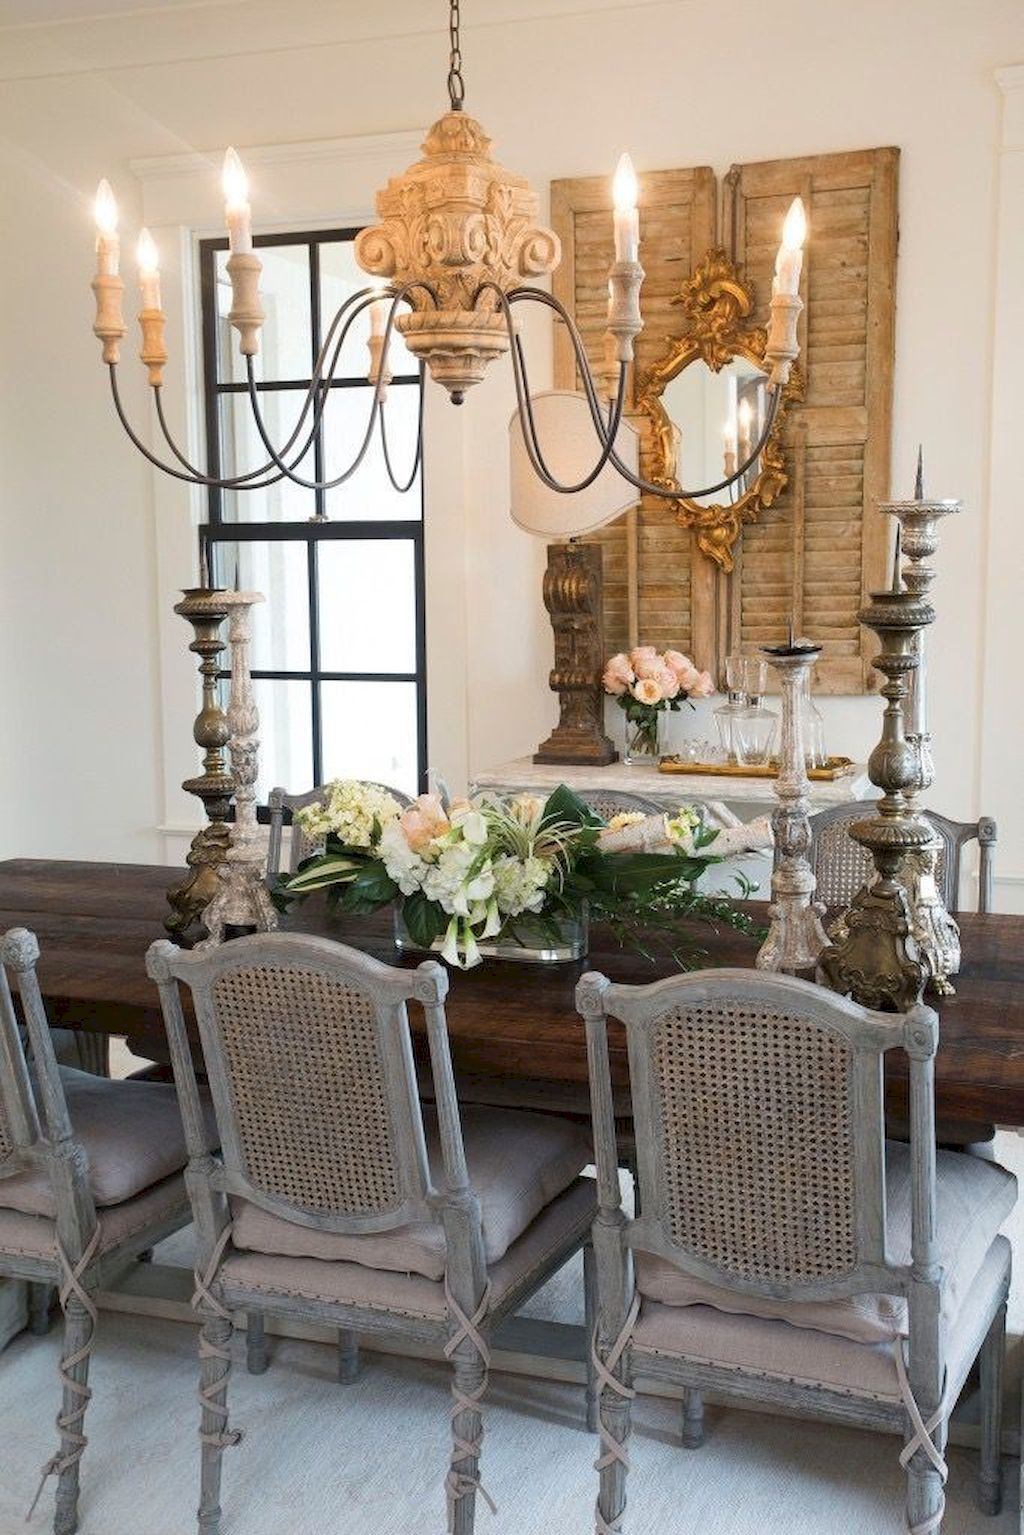 55 Modern French Country Dining Room Table Decor Ideas French